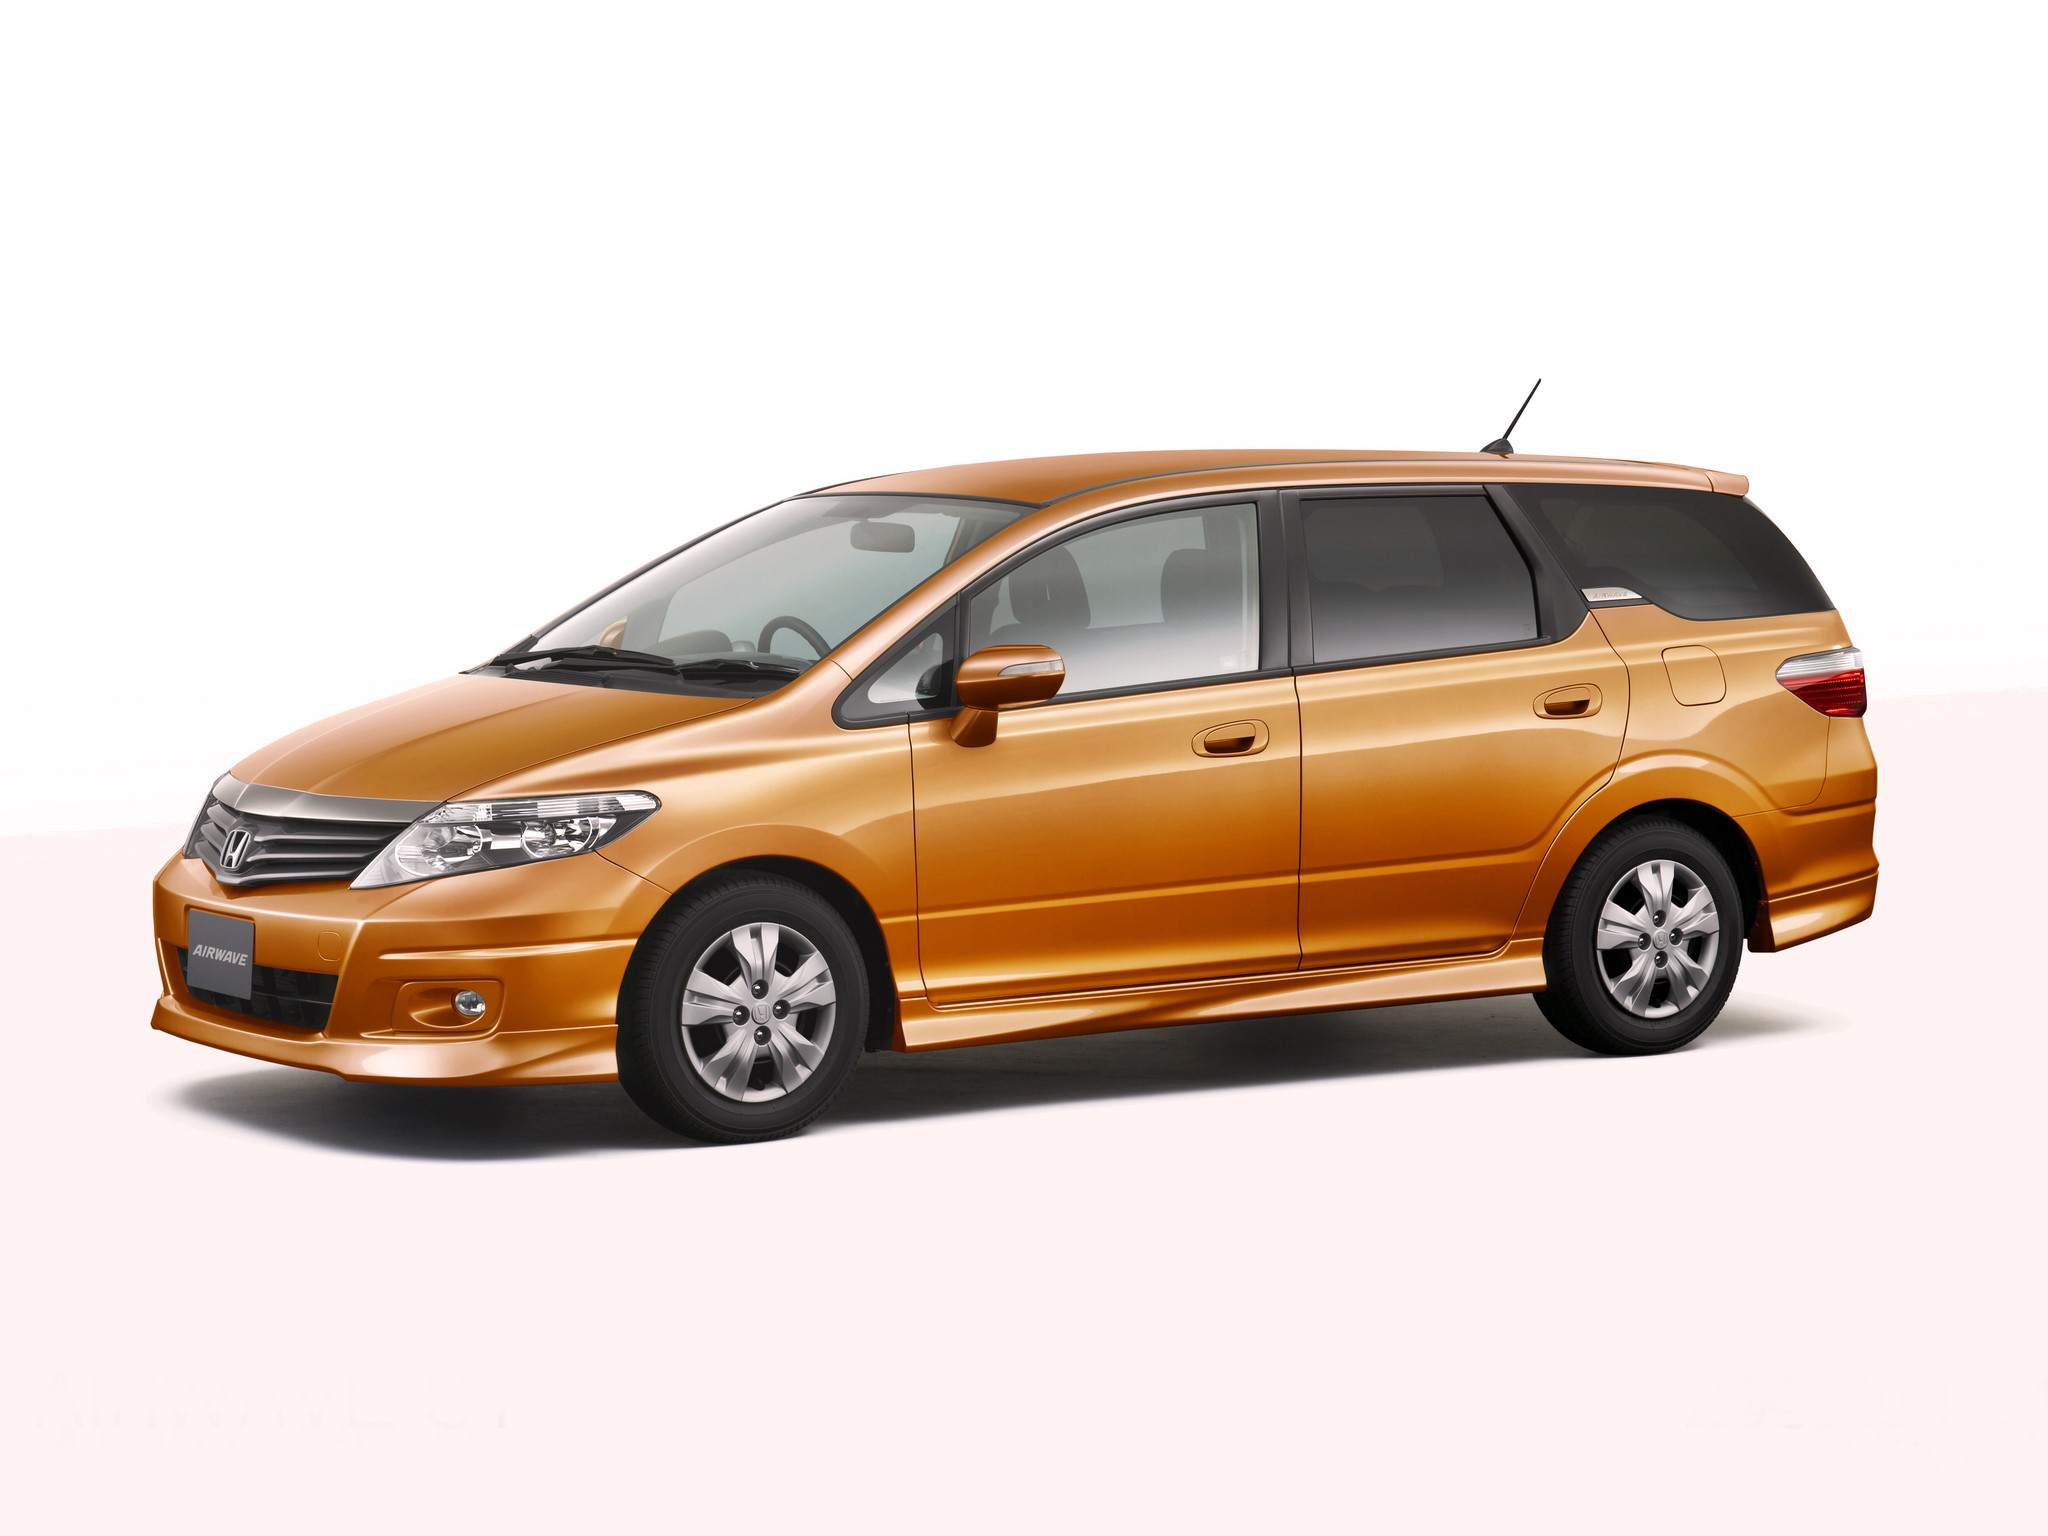 Honda Airwave: description and specifications 89